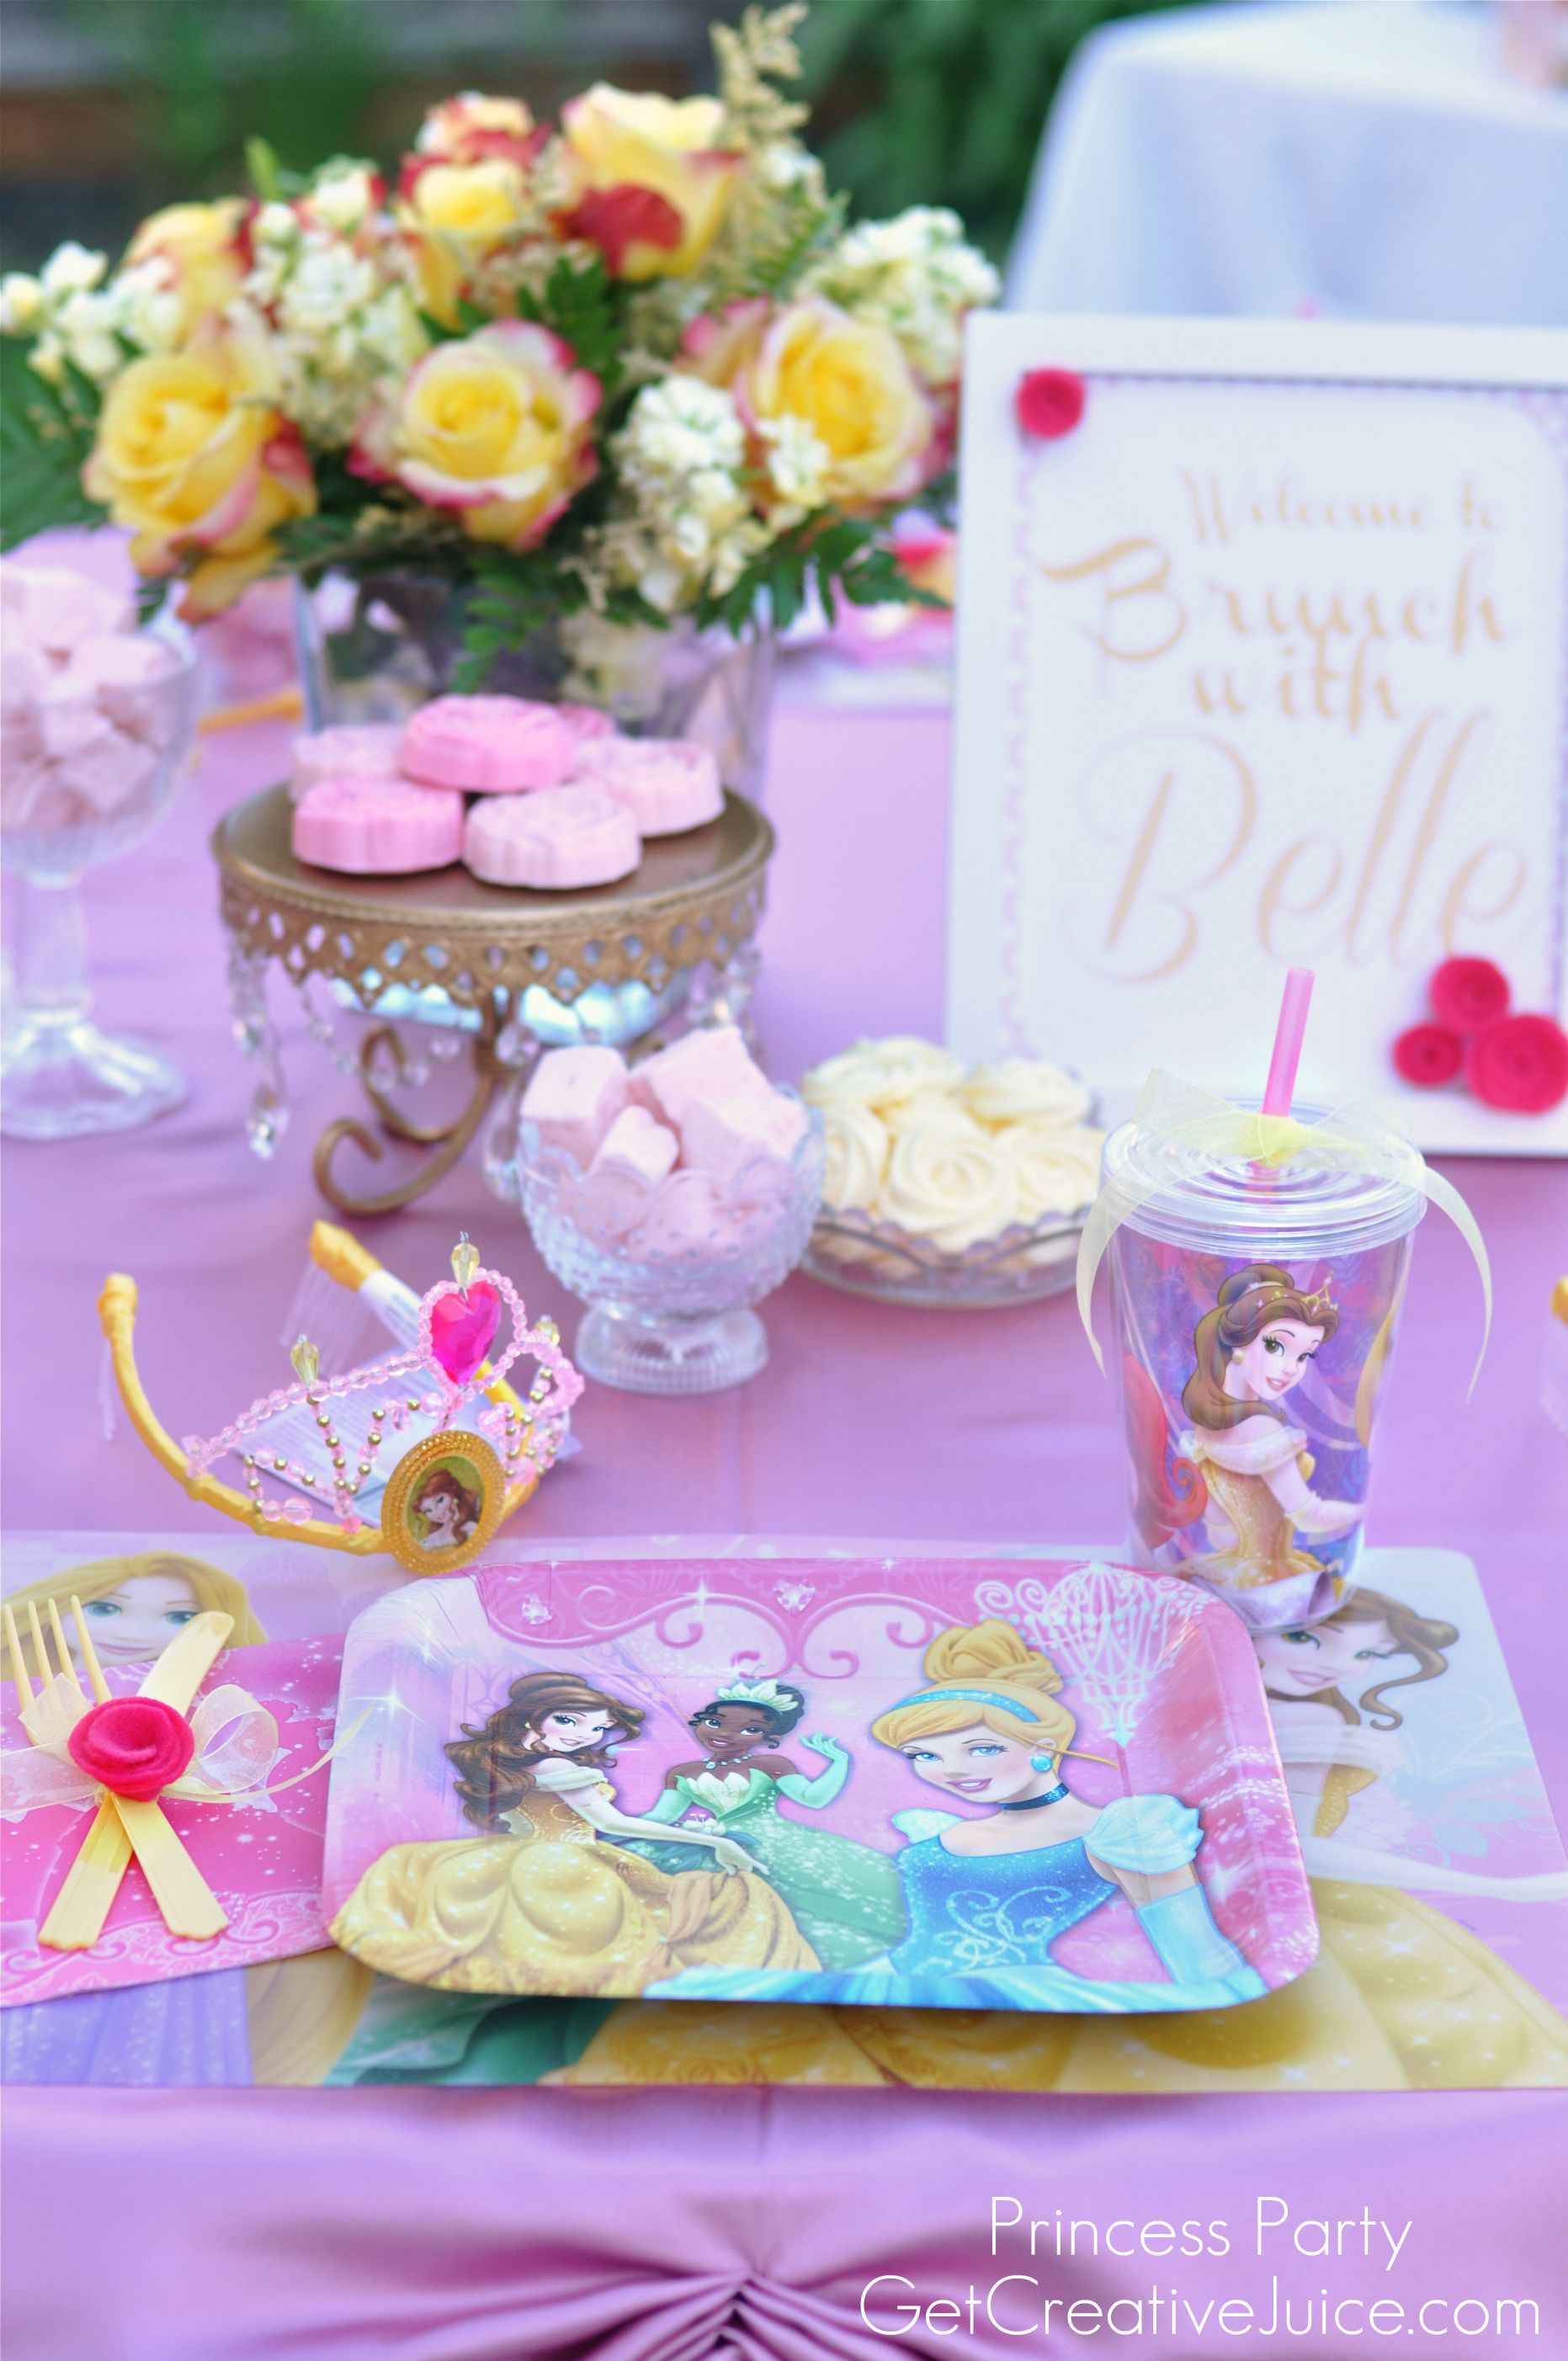 Princess Party Table Setting Ideas And Decorations